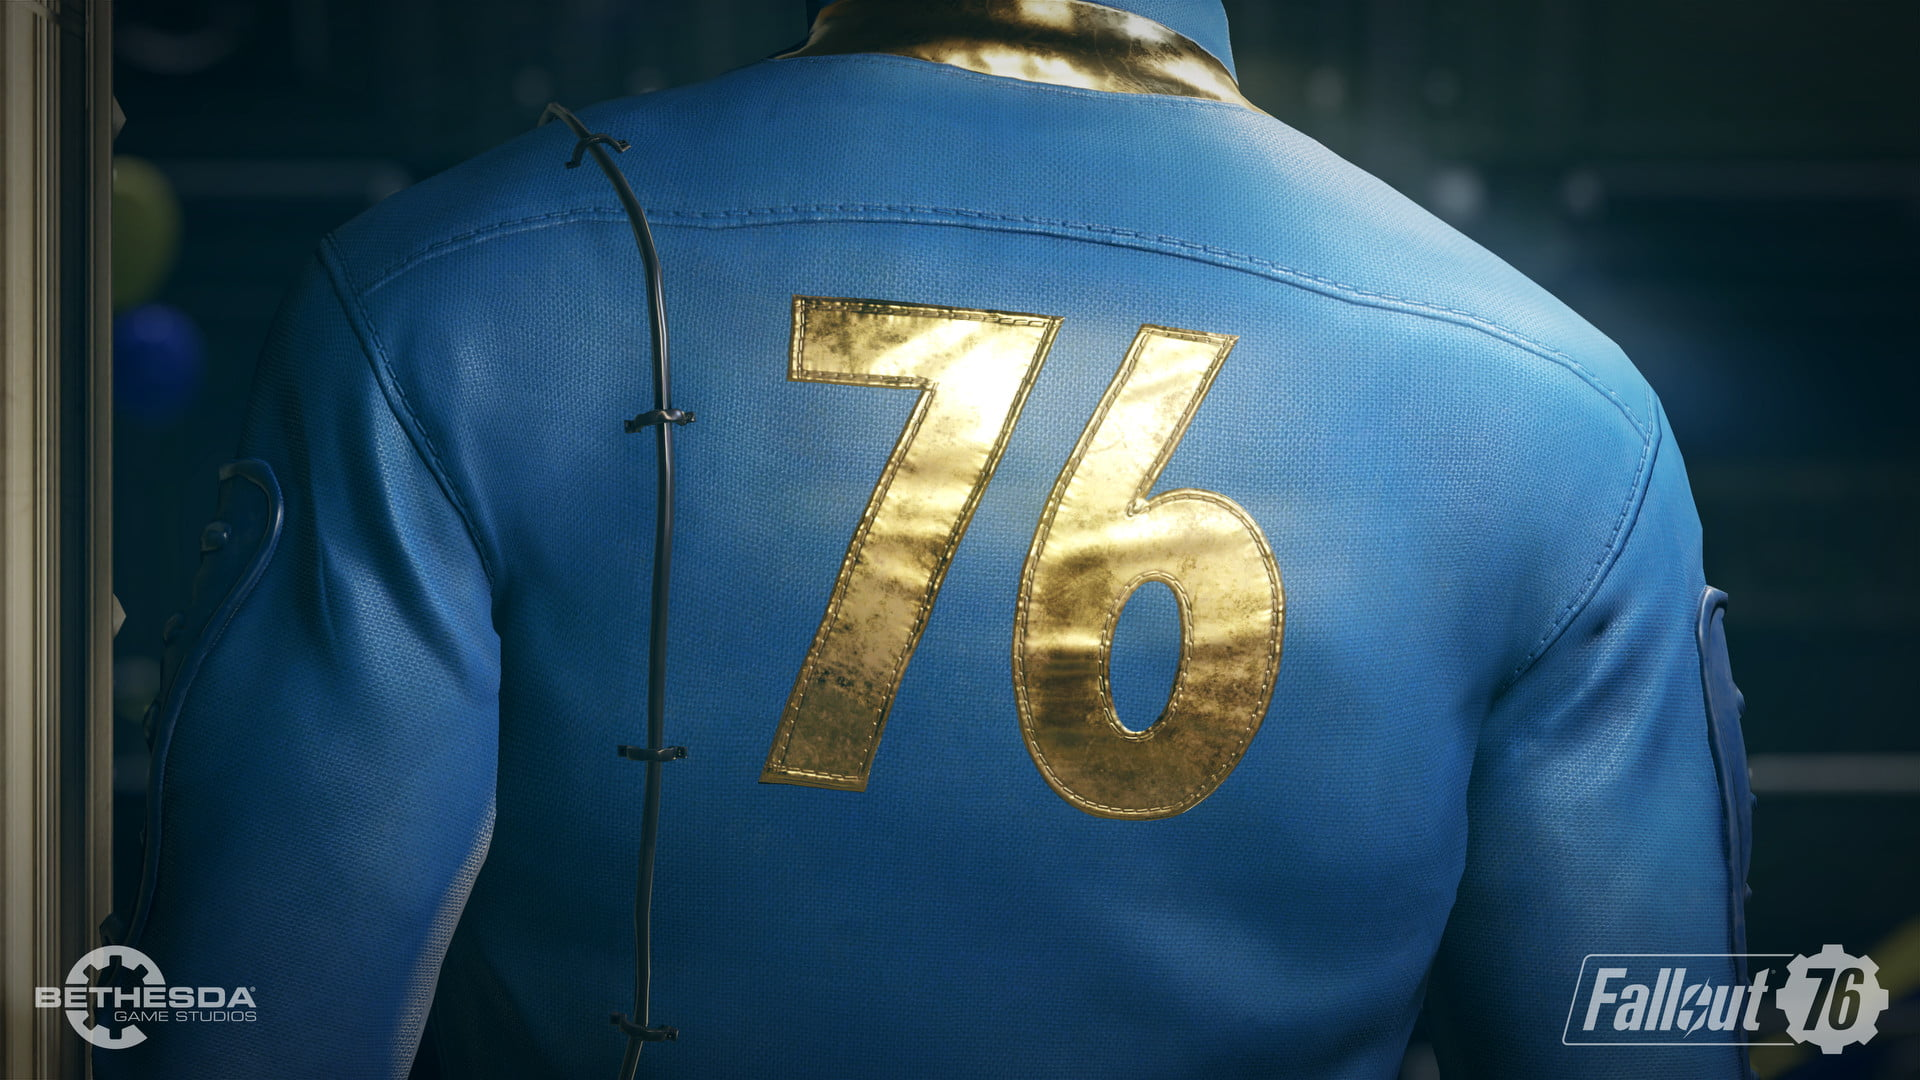 Fallout 76 Users Had Personal Info Exposed By Bethesda's